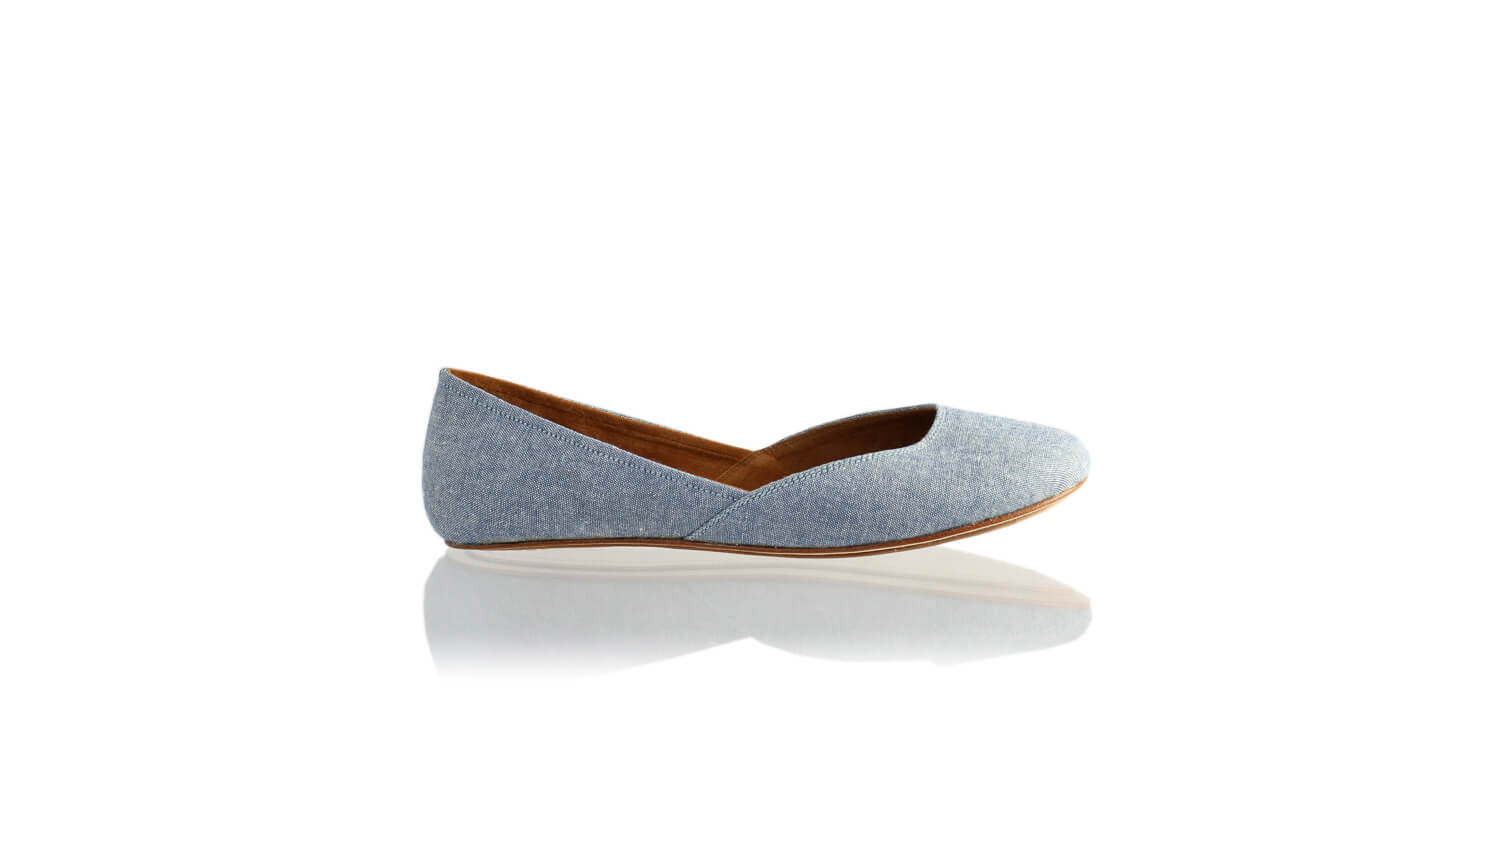 Leather-shoes-Punjab 5mm Ballet - Light Blue Linen-flats ballet-NILUH DJELANTIK-NILUH DJELANTIK